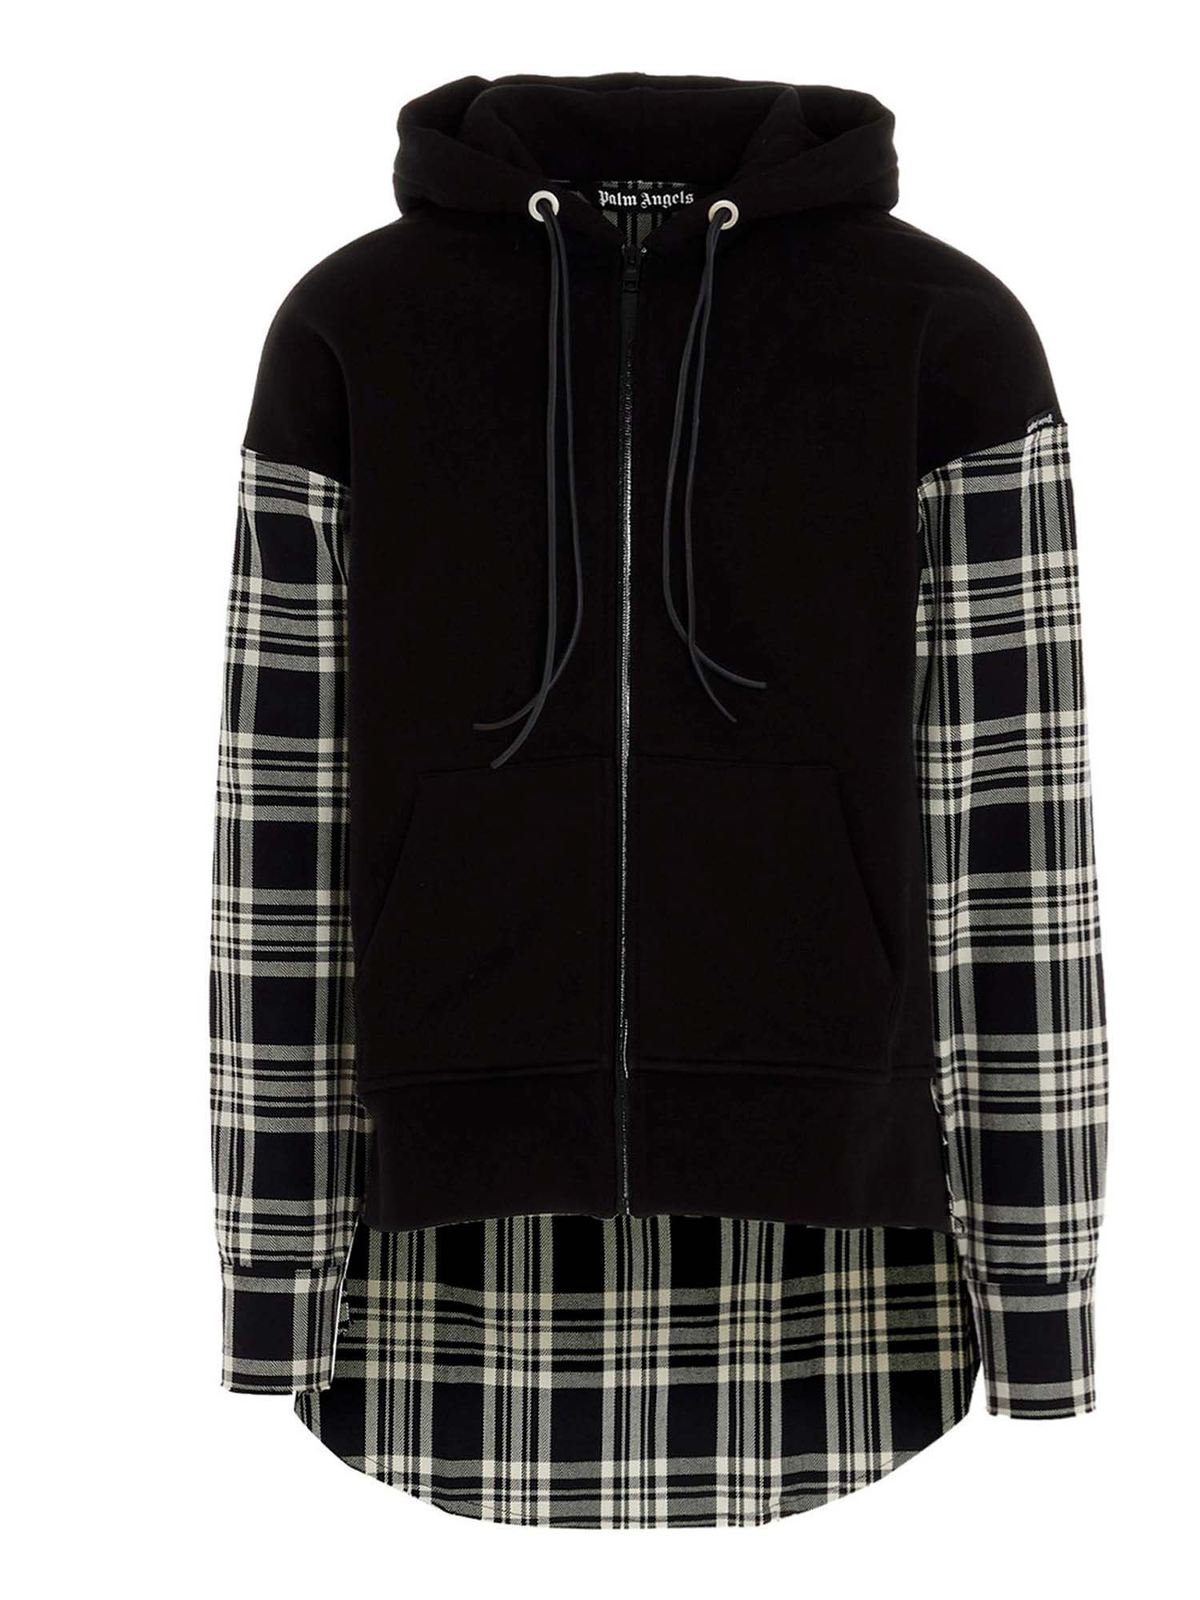 PALM ANGELS LOGO CHECK SWEATSHIRT IN BLACK AND WHITE